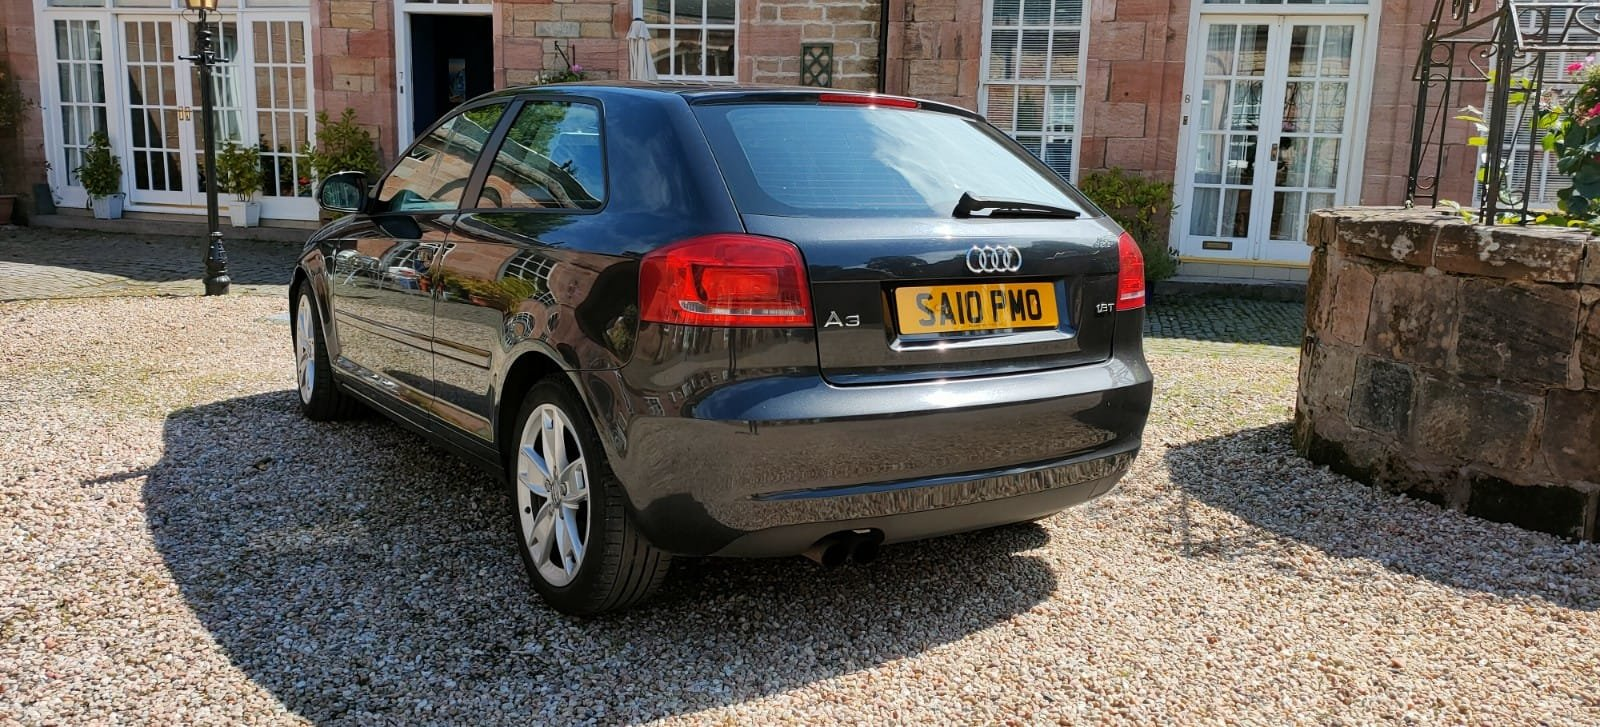 Audi, A3, TFSI Sport, 2010, 1.8T, Superb Condition For Sale (picture 4 of 5)